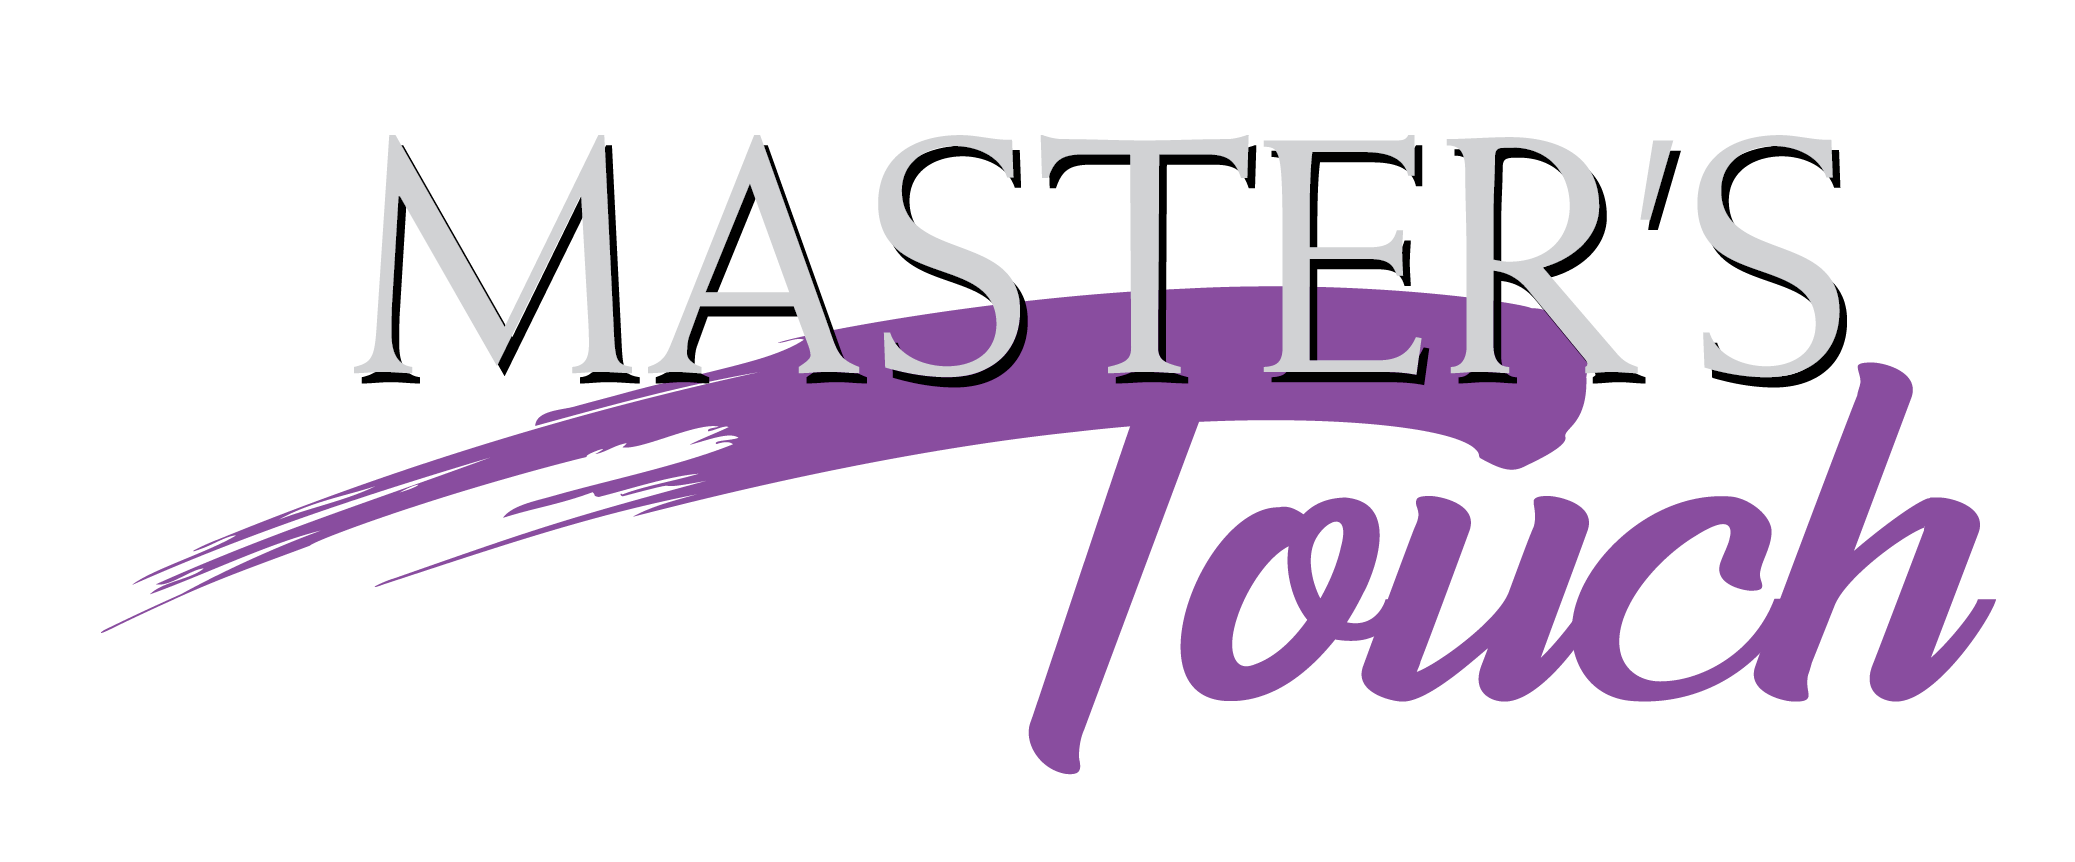 Yonkers Parking Tickets >> Master's Touch Art Program at Unity | Unity Christian Music Festival